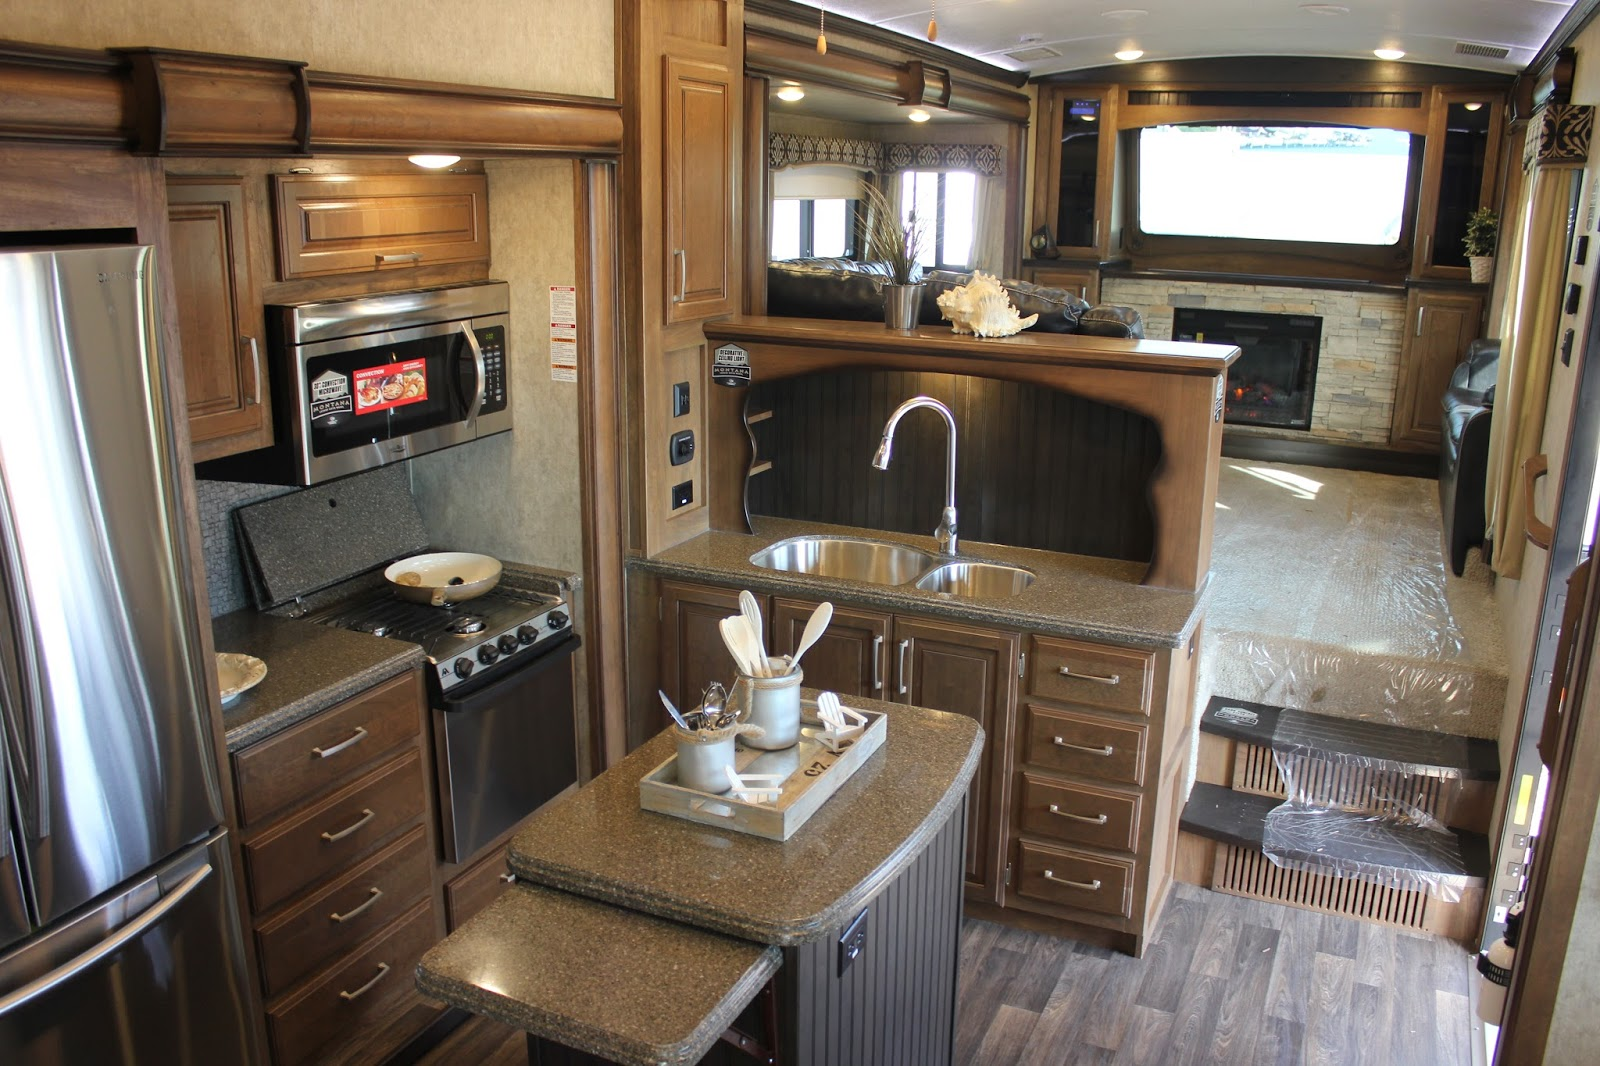 2003 Jayco Fifth Wheel Wiring Diagram Highlights From The Rv Dealer Open House Gr8lakescamper